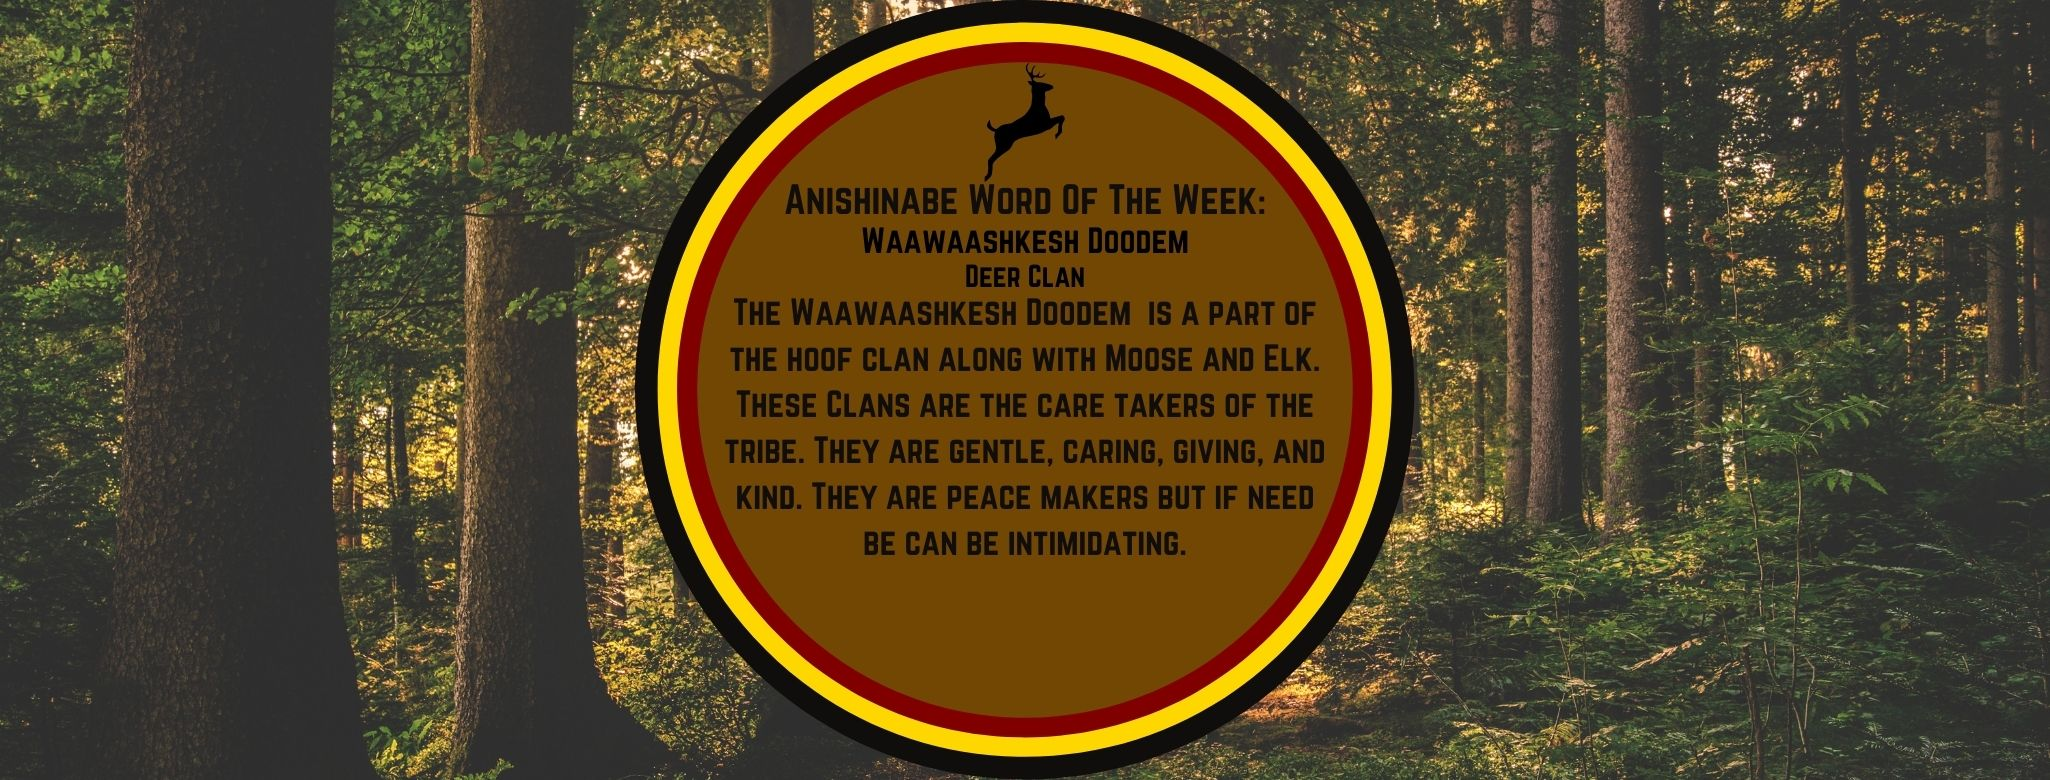 Anishinabe Word of the Week Waawaashkesh Dodem